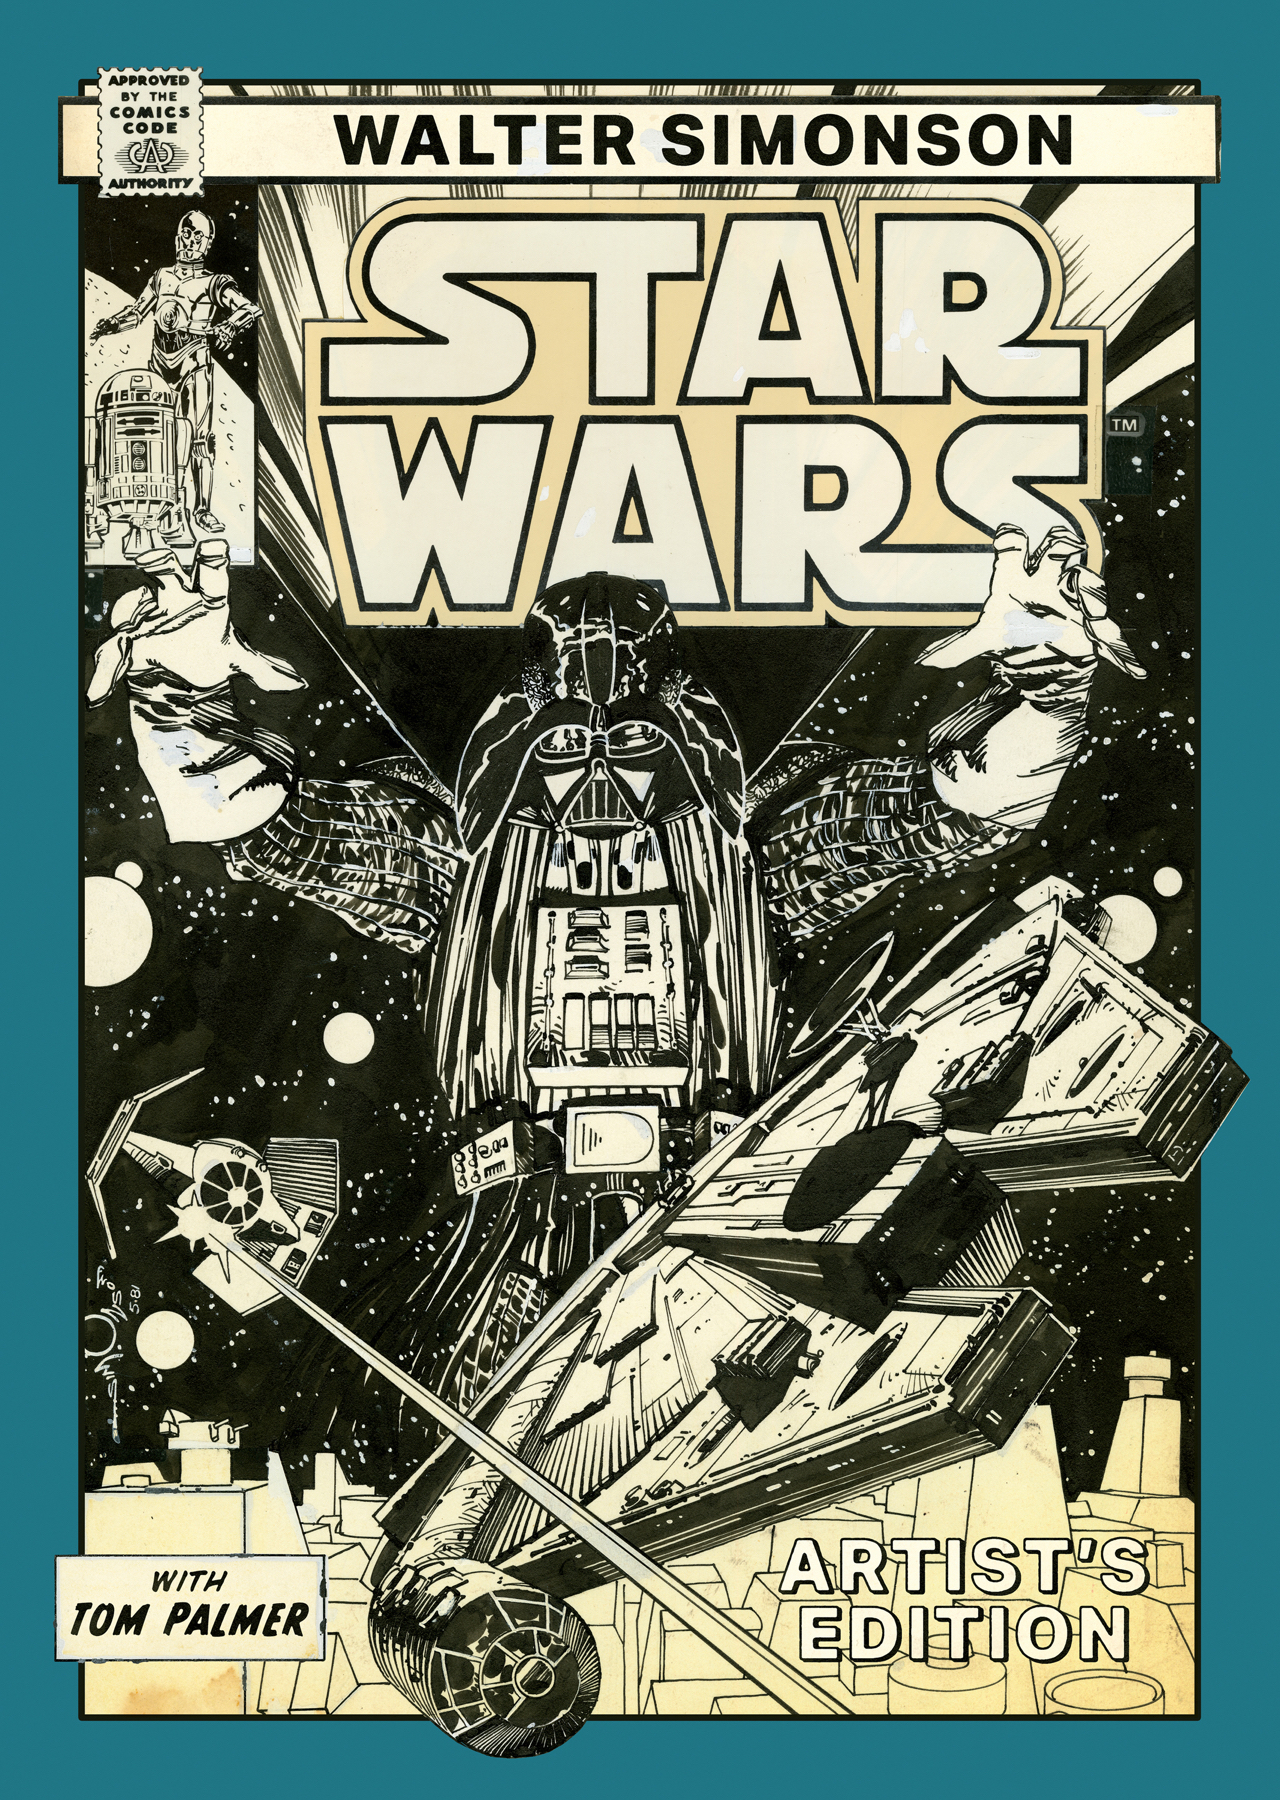 Out today: Walter Simonson Star Wars Artist's Edition 1